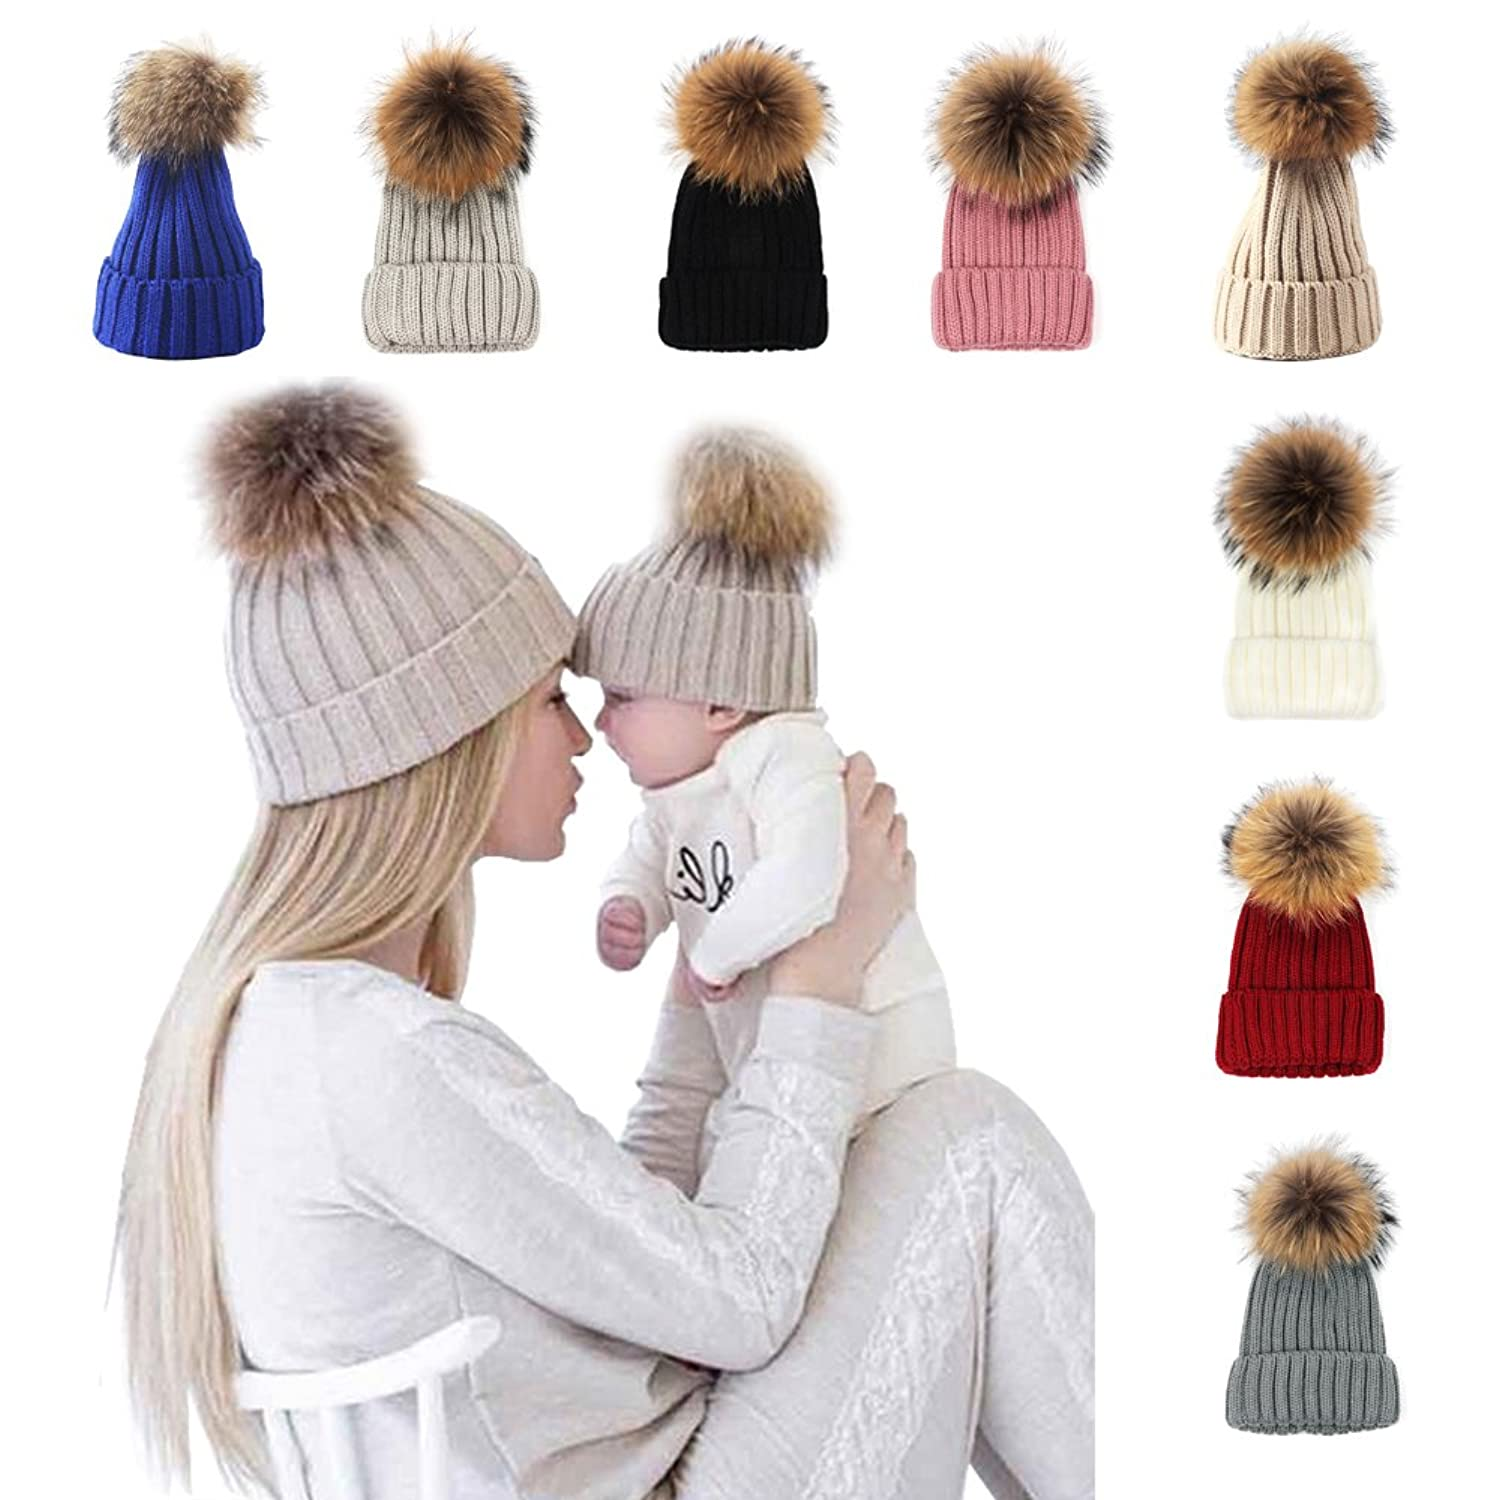 966faa0508a SUPER SOFT and HIGH QUALITY - The beanie cap is made of comfortable  material